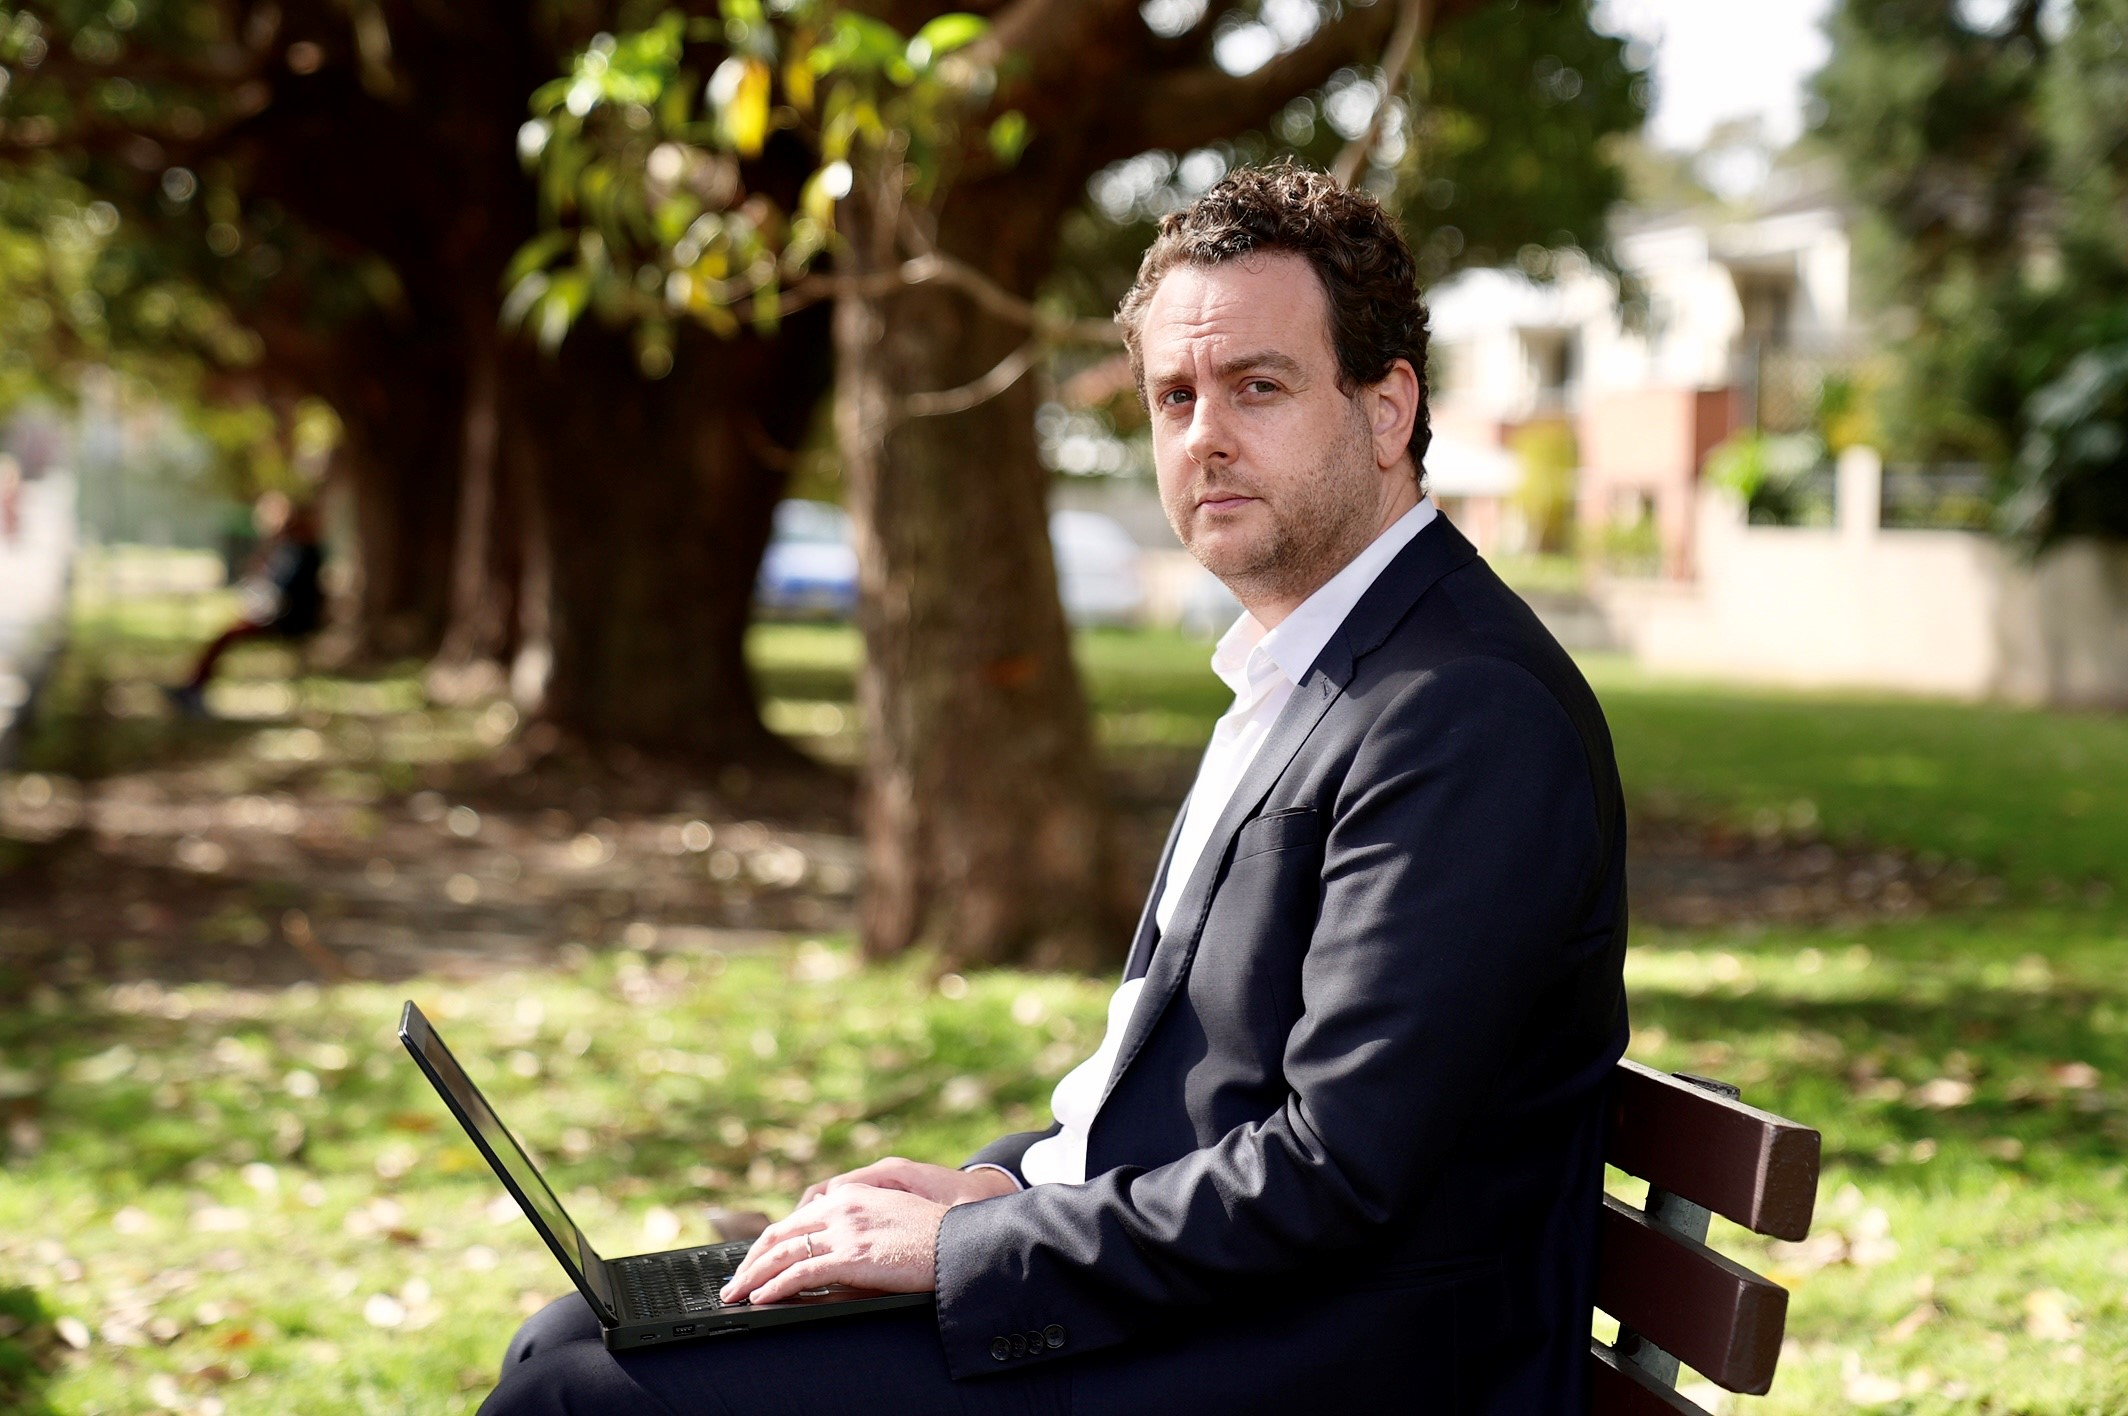 Xavier in a black suit sits at a park bench in Marrickville.